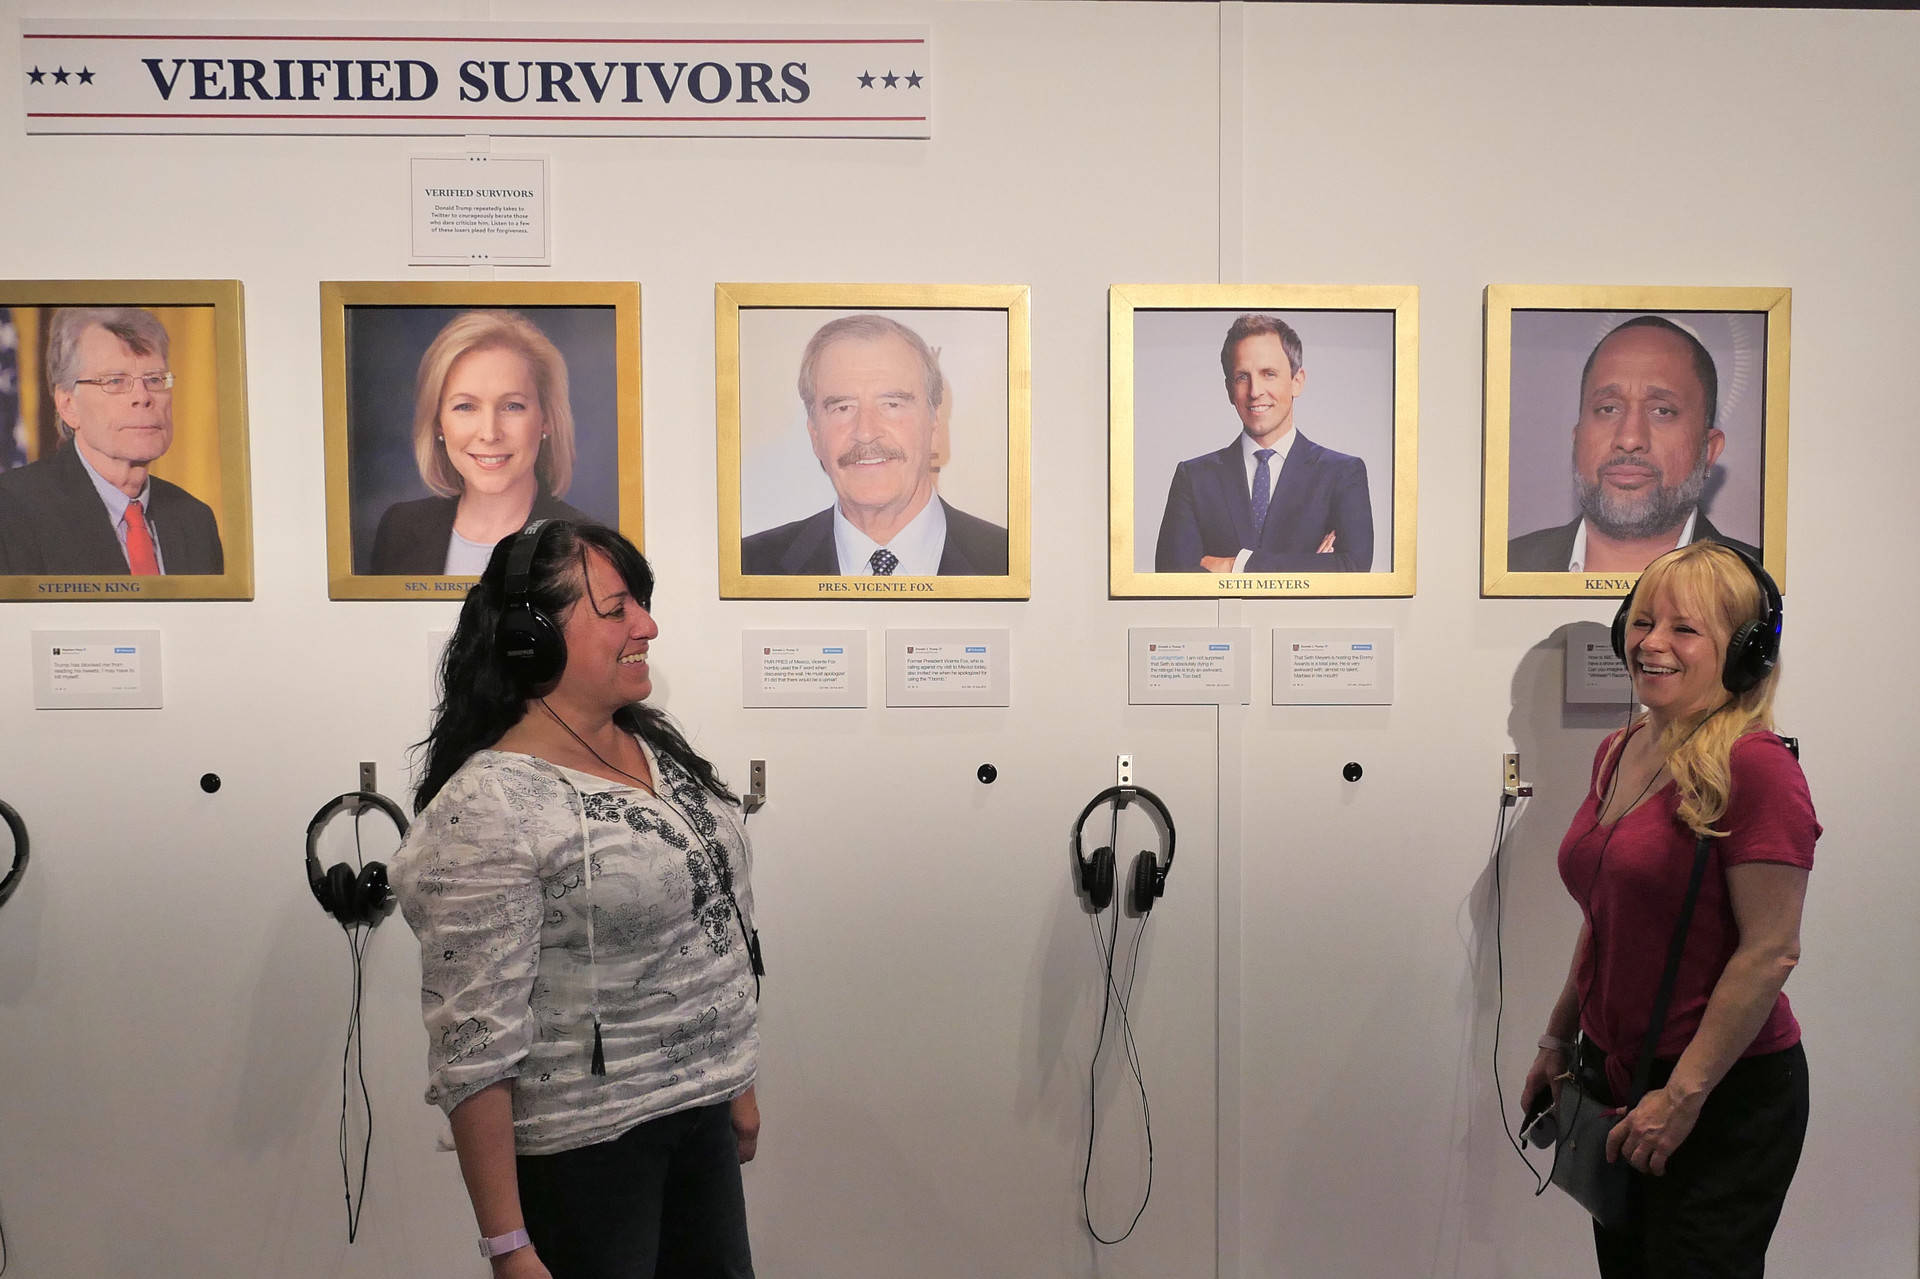 Diana Gaffney, L, and Tina Suca, R, listen to recordings of celebrities and politicians who have battled with President Trump on Twitter and survived at the Donald J. Trump Presidential Twitter Library at Clusterfest in San Francisco. Sheraz Sadiq/KQED